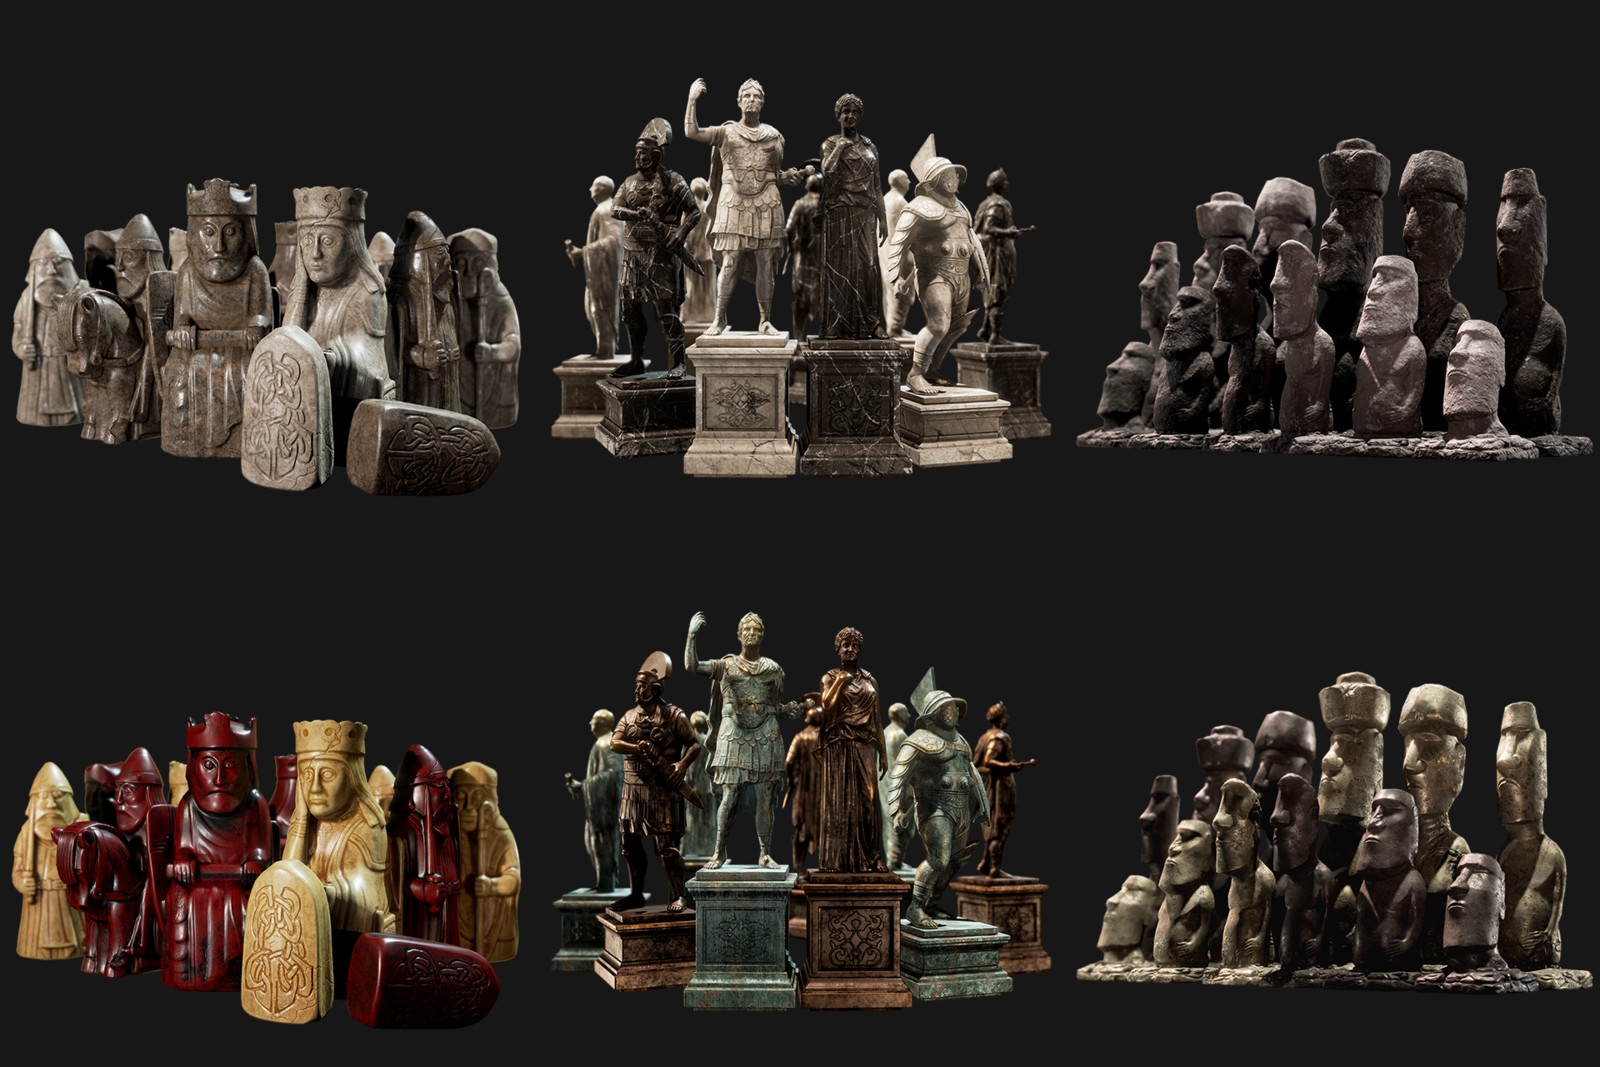 """Remastered Original DLC Chess Sets  """"Isle of Lewis"""" - """"Romans"""" - """"Easter""""  High-poly re-work - Texturing - Shader Creation - Optimisation"""